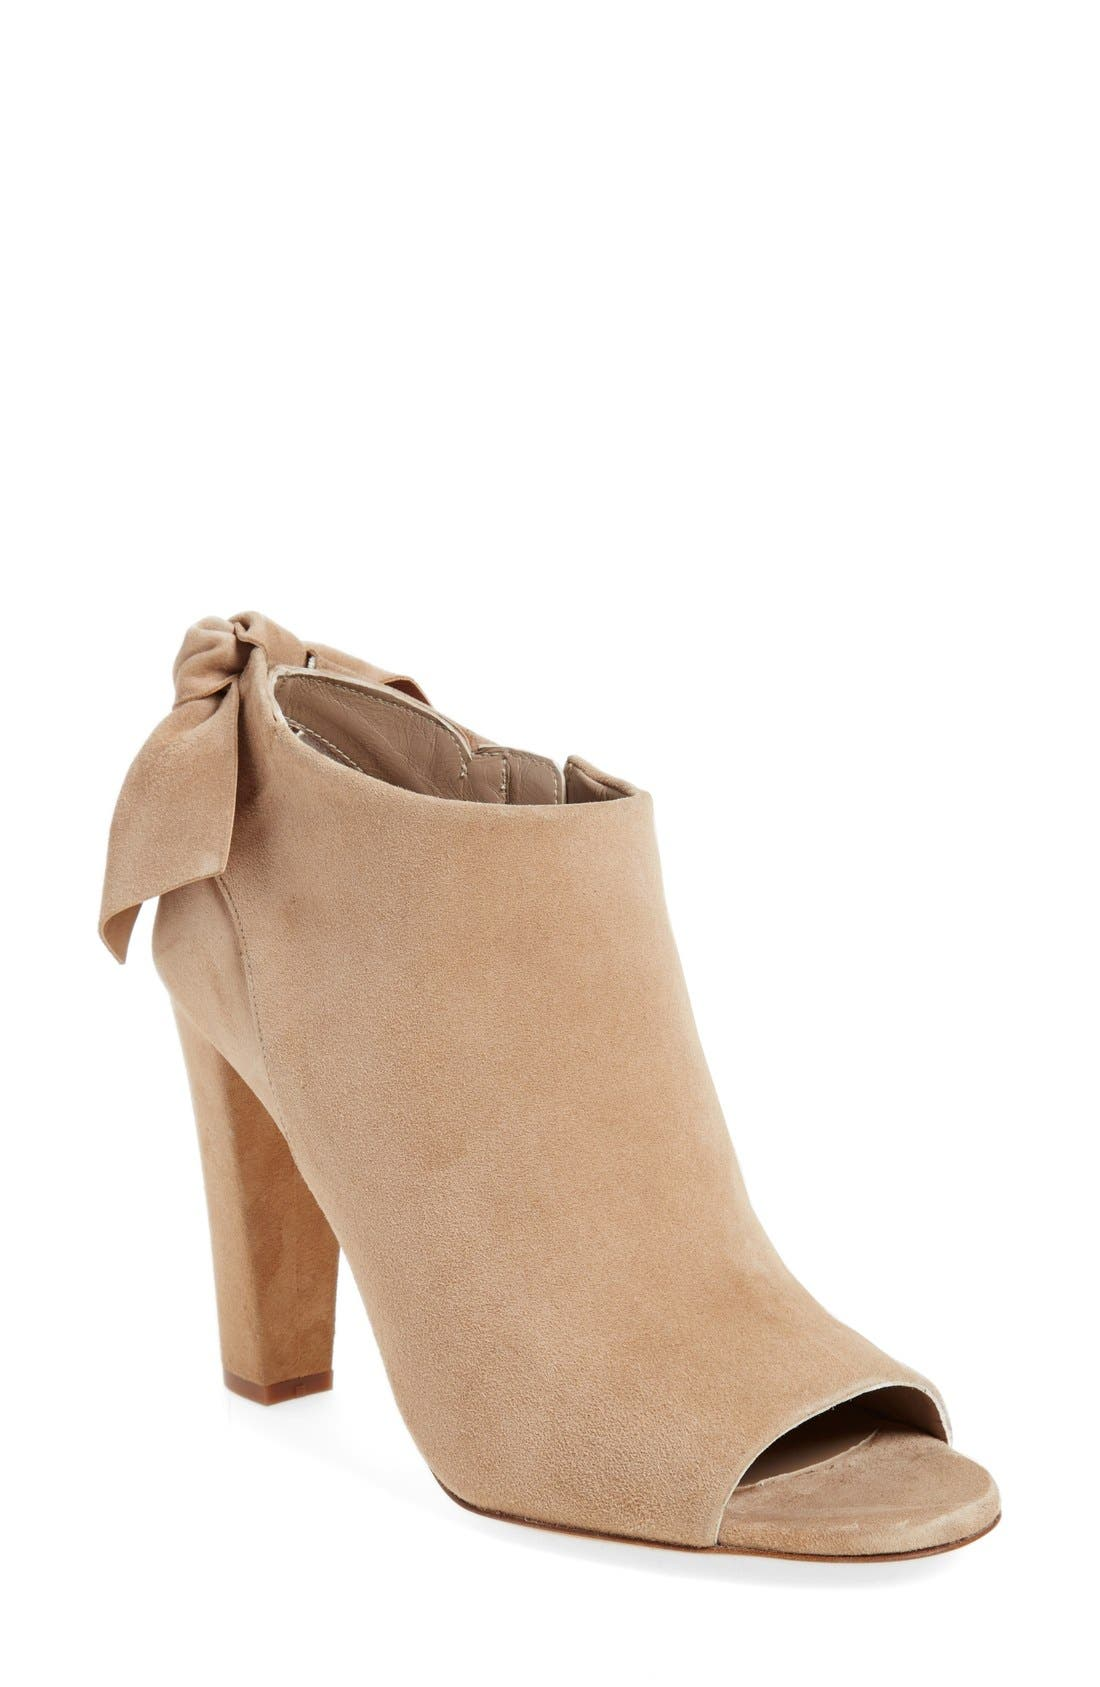 Alternate Image 1 Selected - Delman 'Dylan' Peep Toe Bootie (Women)